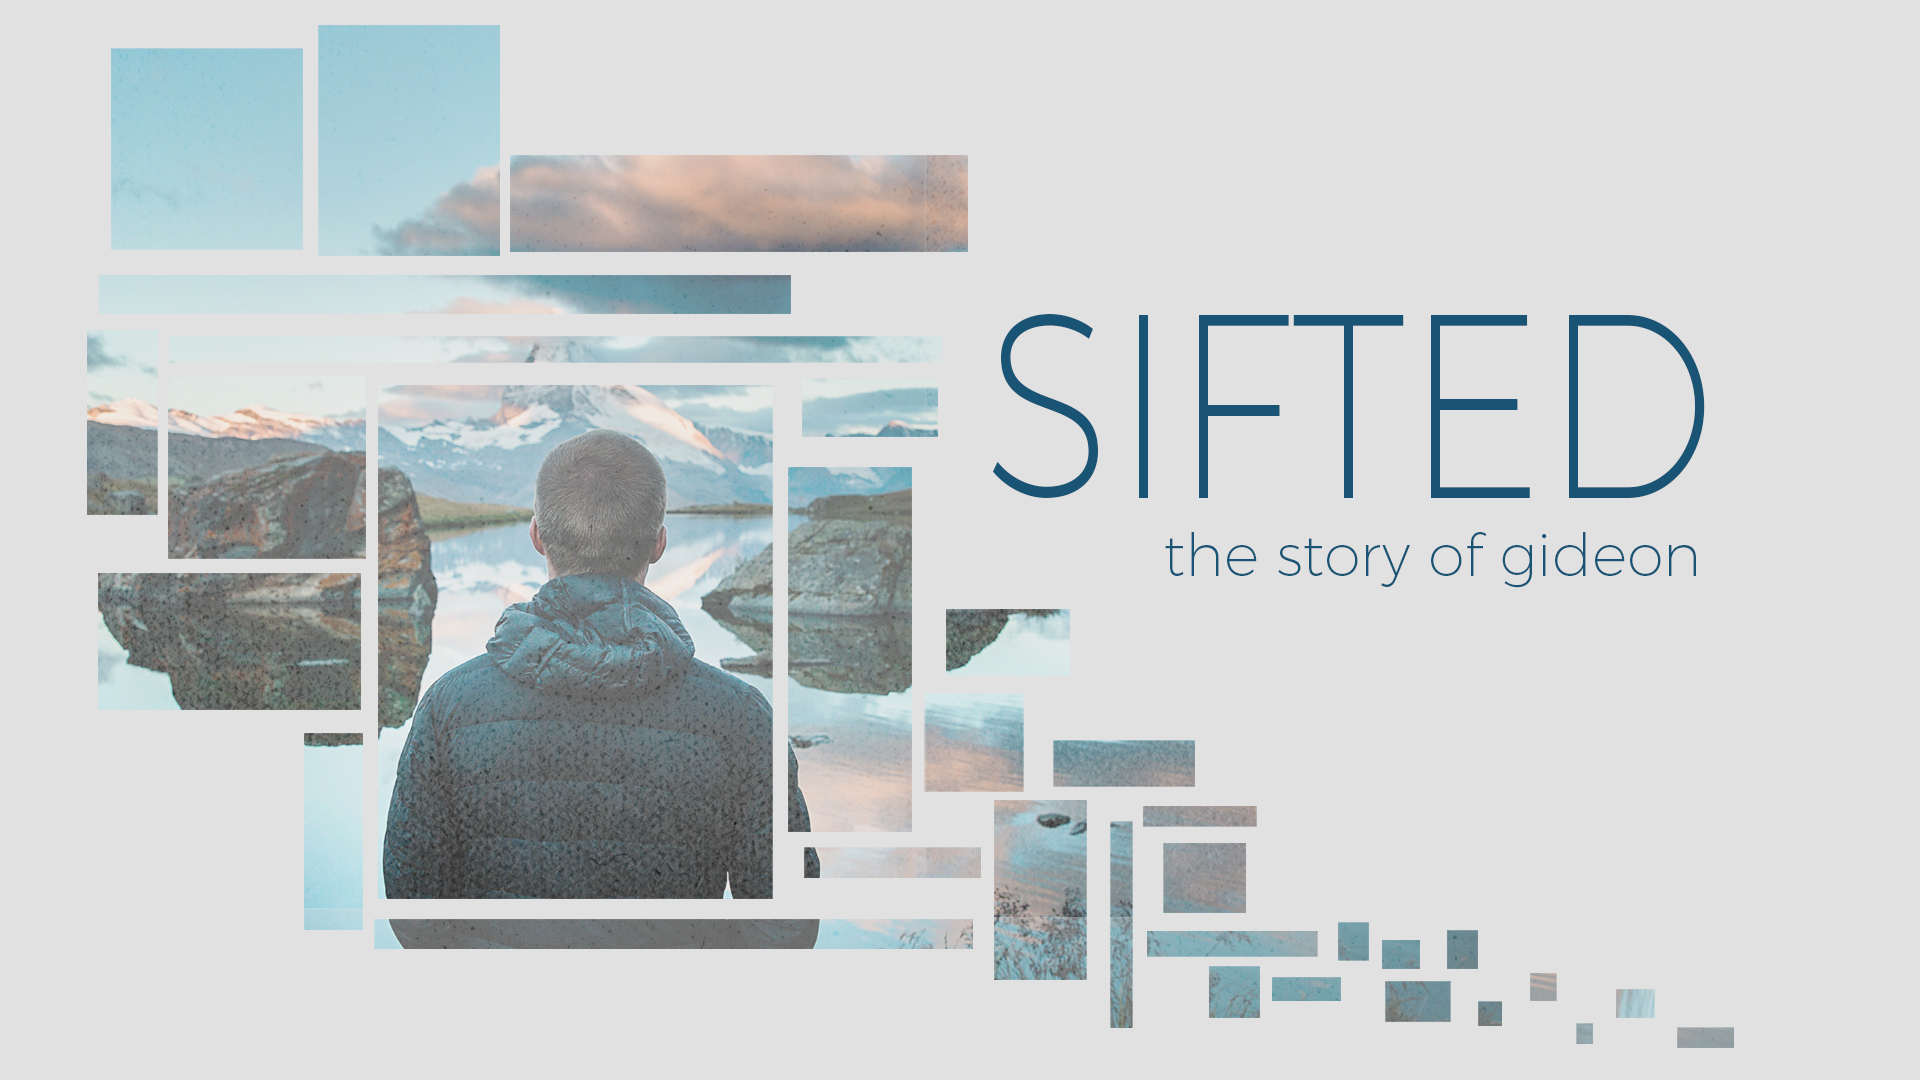 Sifted title slide (Gideon).jpg